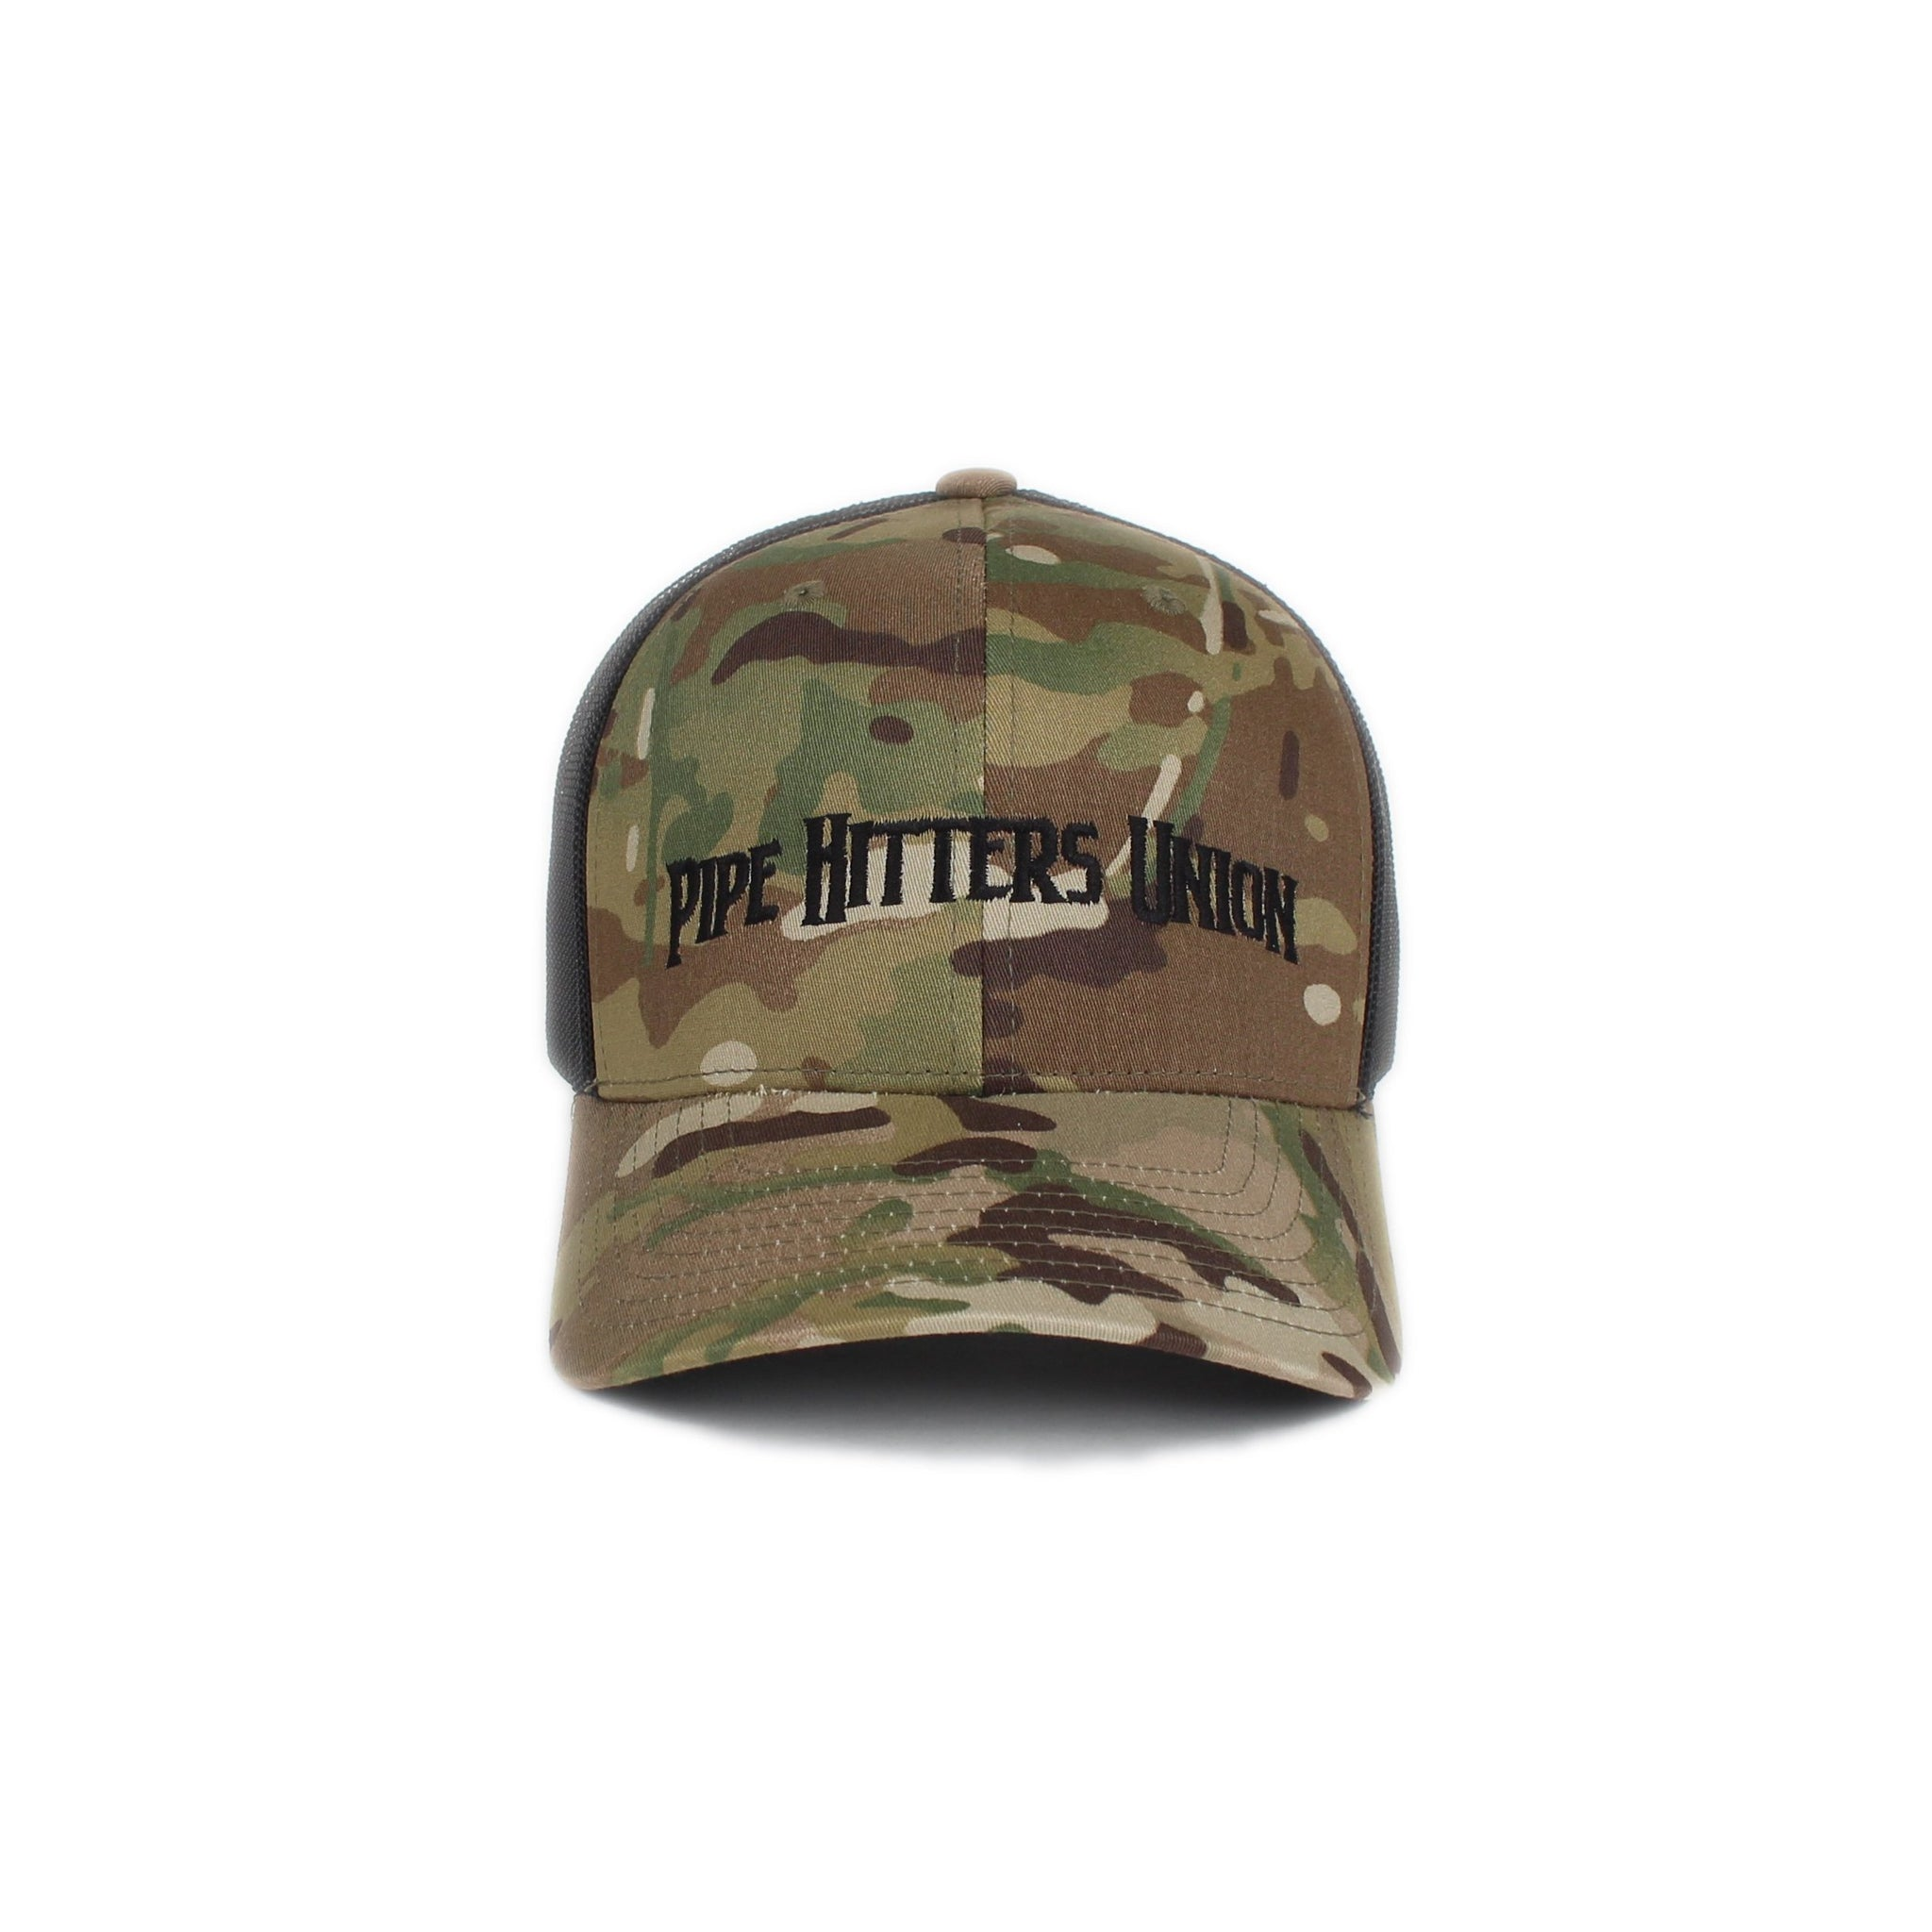 Pipe Hitters Union Trucker -  - Hats - Pipe Hitters Union